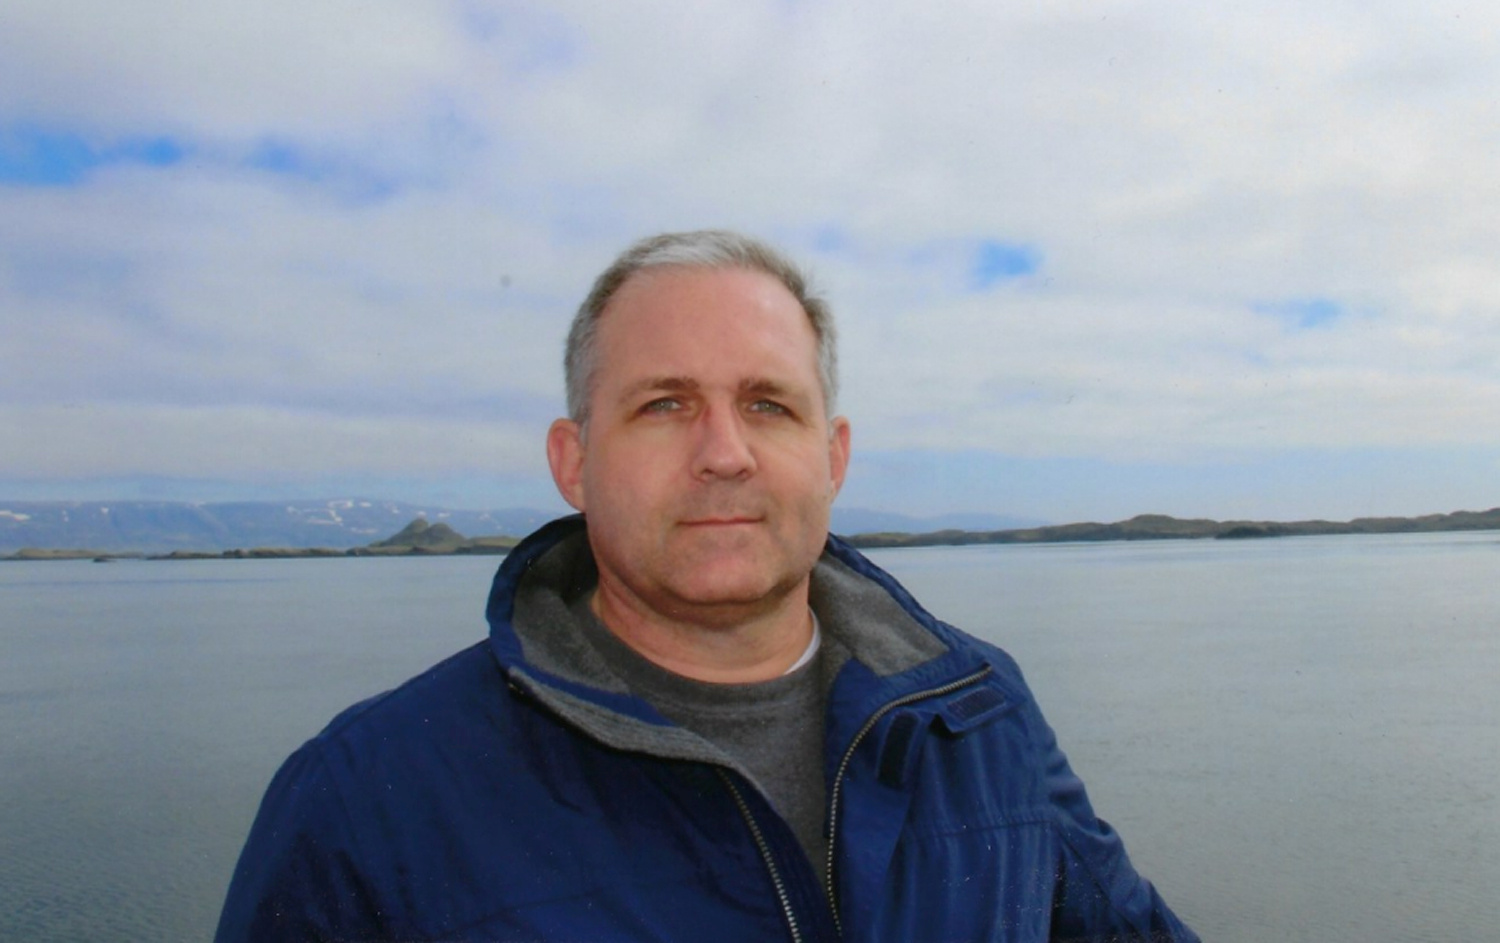 FILE PHOTO: Paul Whelan, a U.S. citizen detained in Russia for suspected spying, appears in a photo provided by the Whelan family on January 1, 2019. Courtesy Whelan Family/Handout via REUTERS